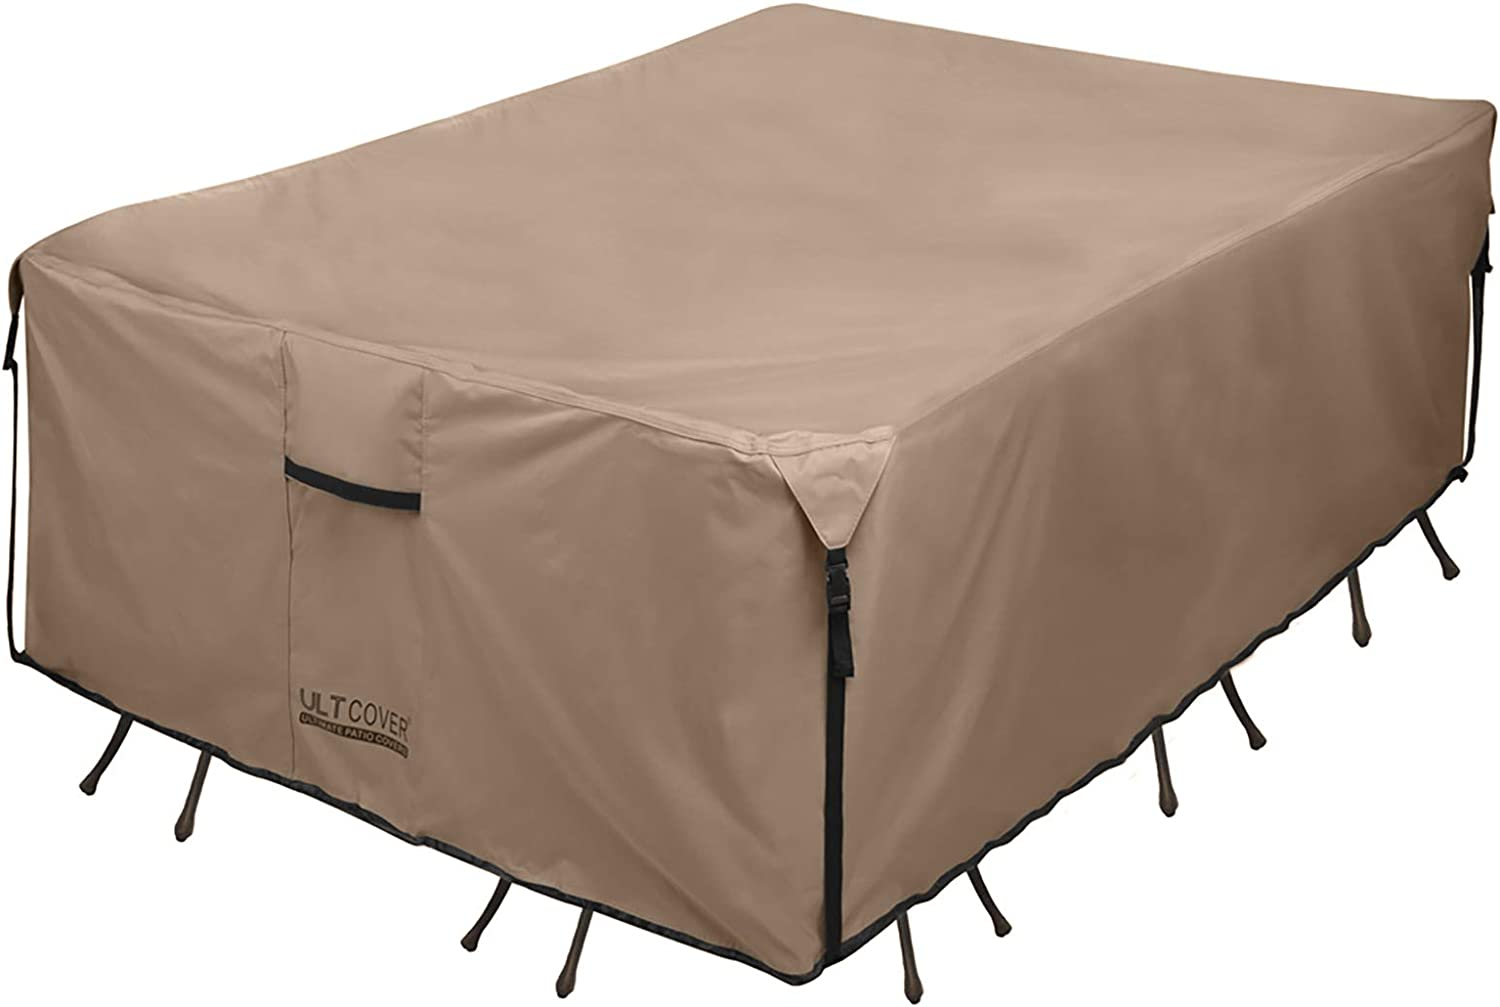 Ultcover Rectangular Patio Heavy Duty Table Cover 600d Tough Canvas Waterproof Outdoor Dining Table And Chairs General Purpose Furniture Cover Size 88l X 62w X 28h Inch Amazon Co Uk Kitchen Home